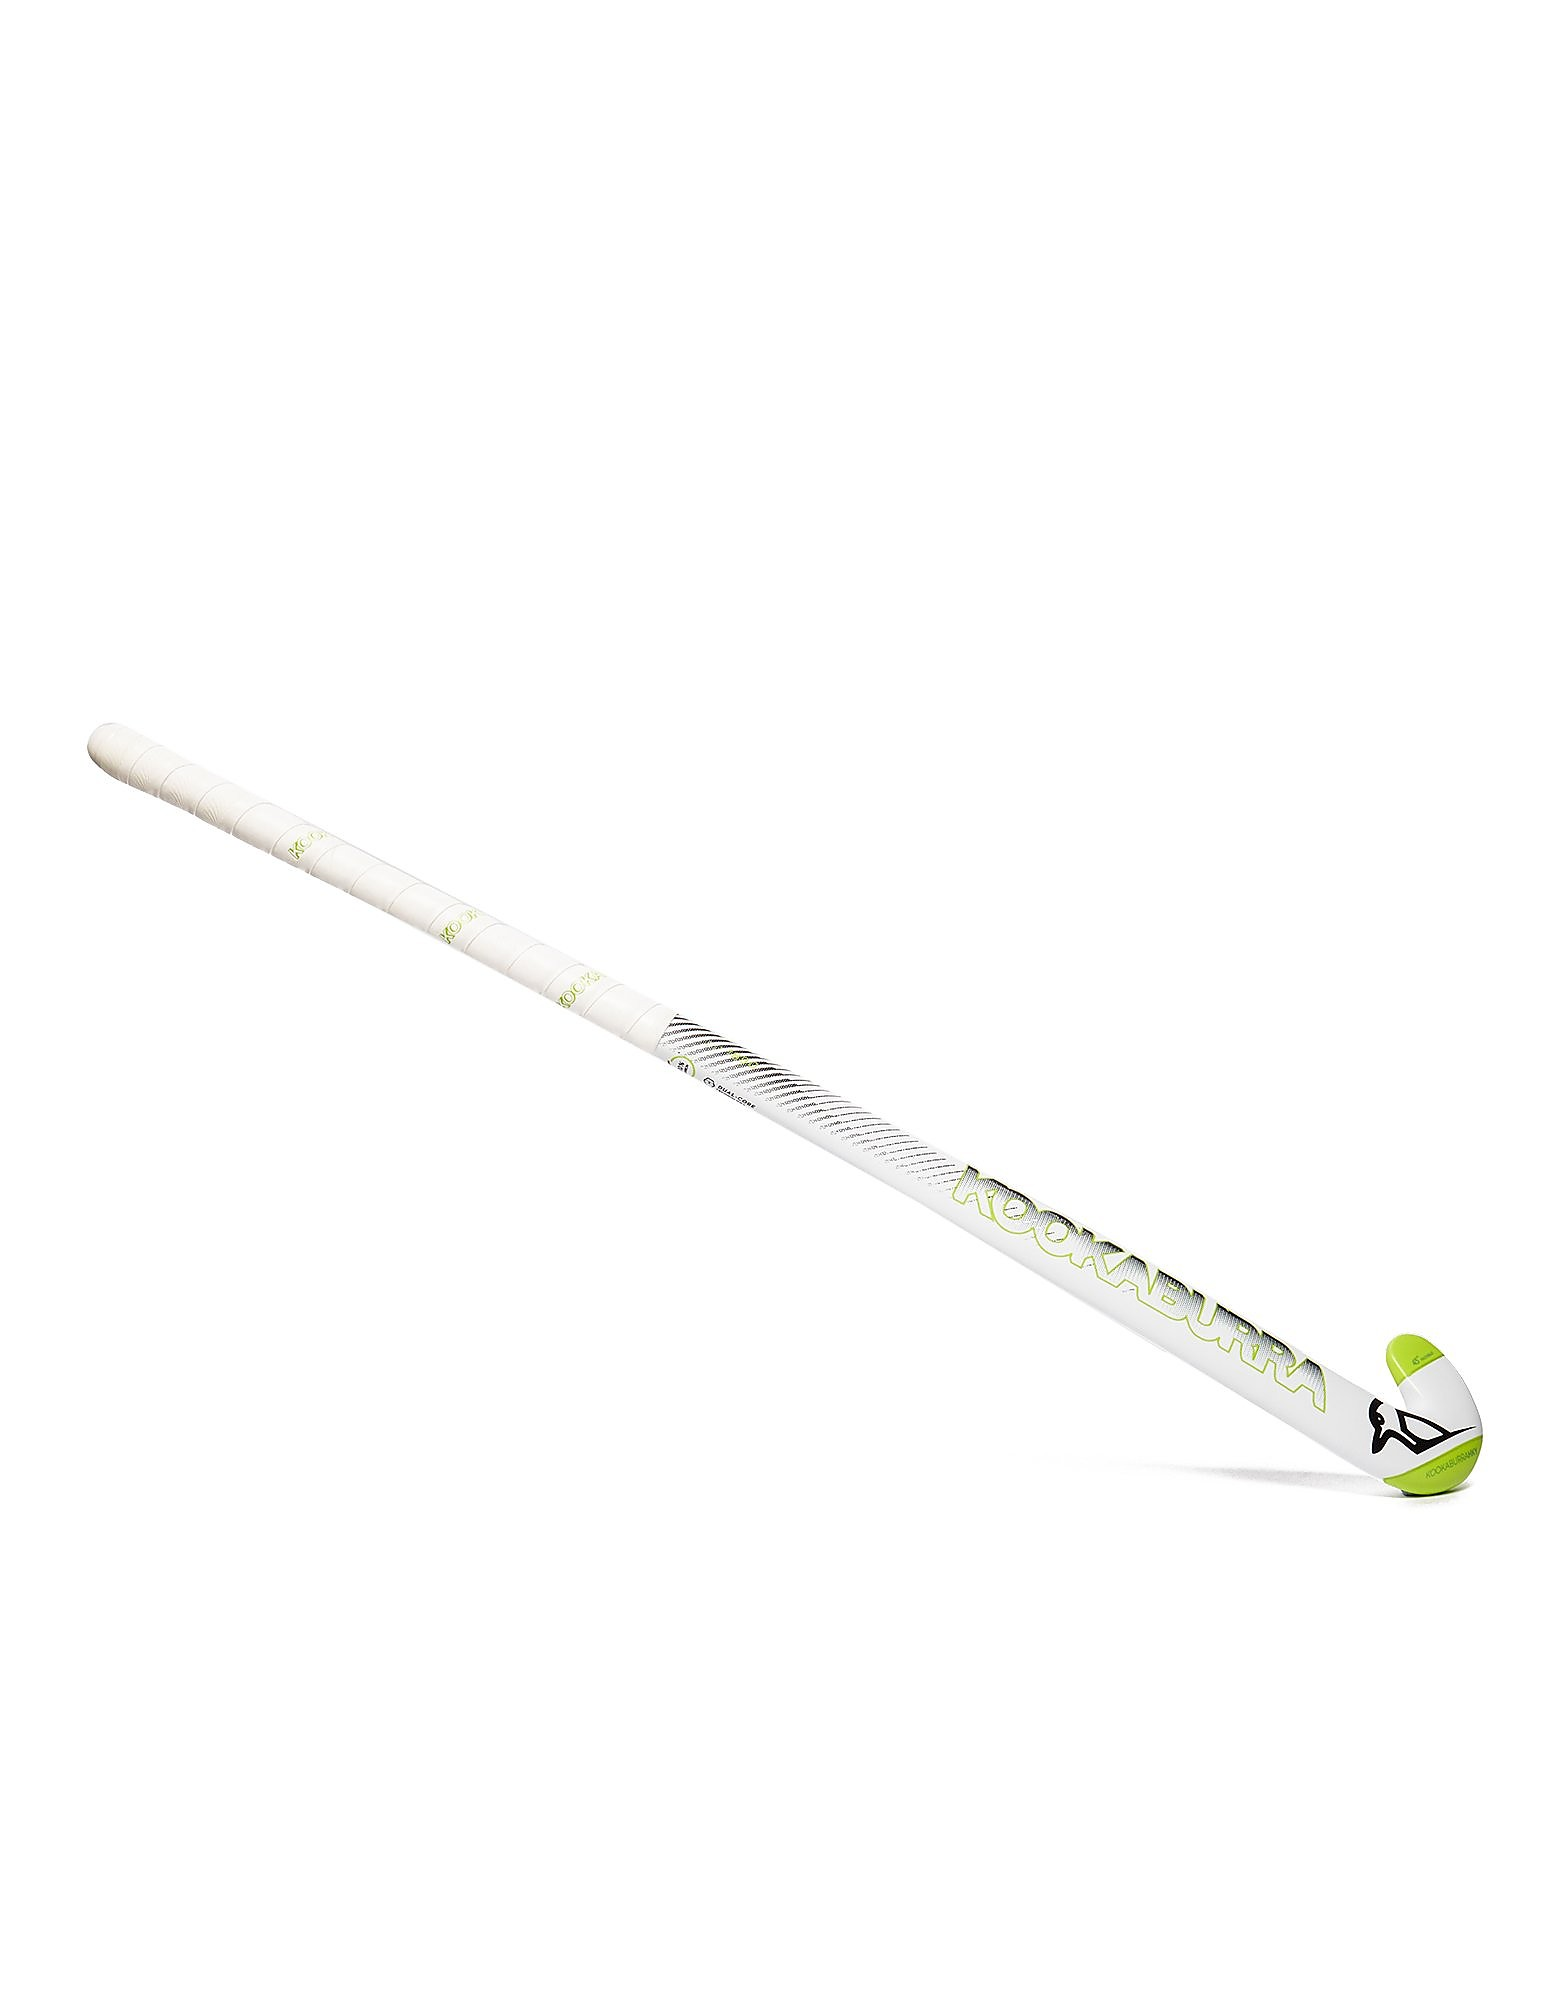 Kookaburra White Noise Composite Hockey Stick